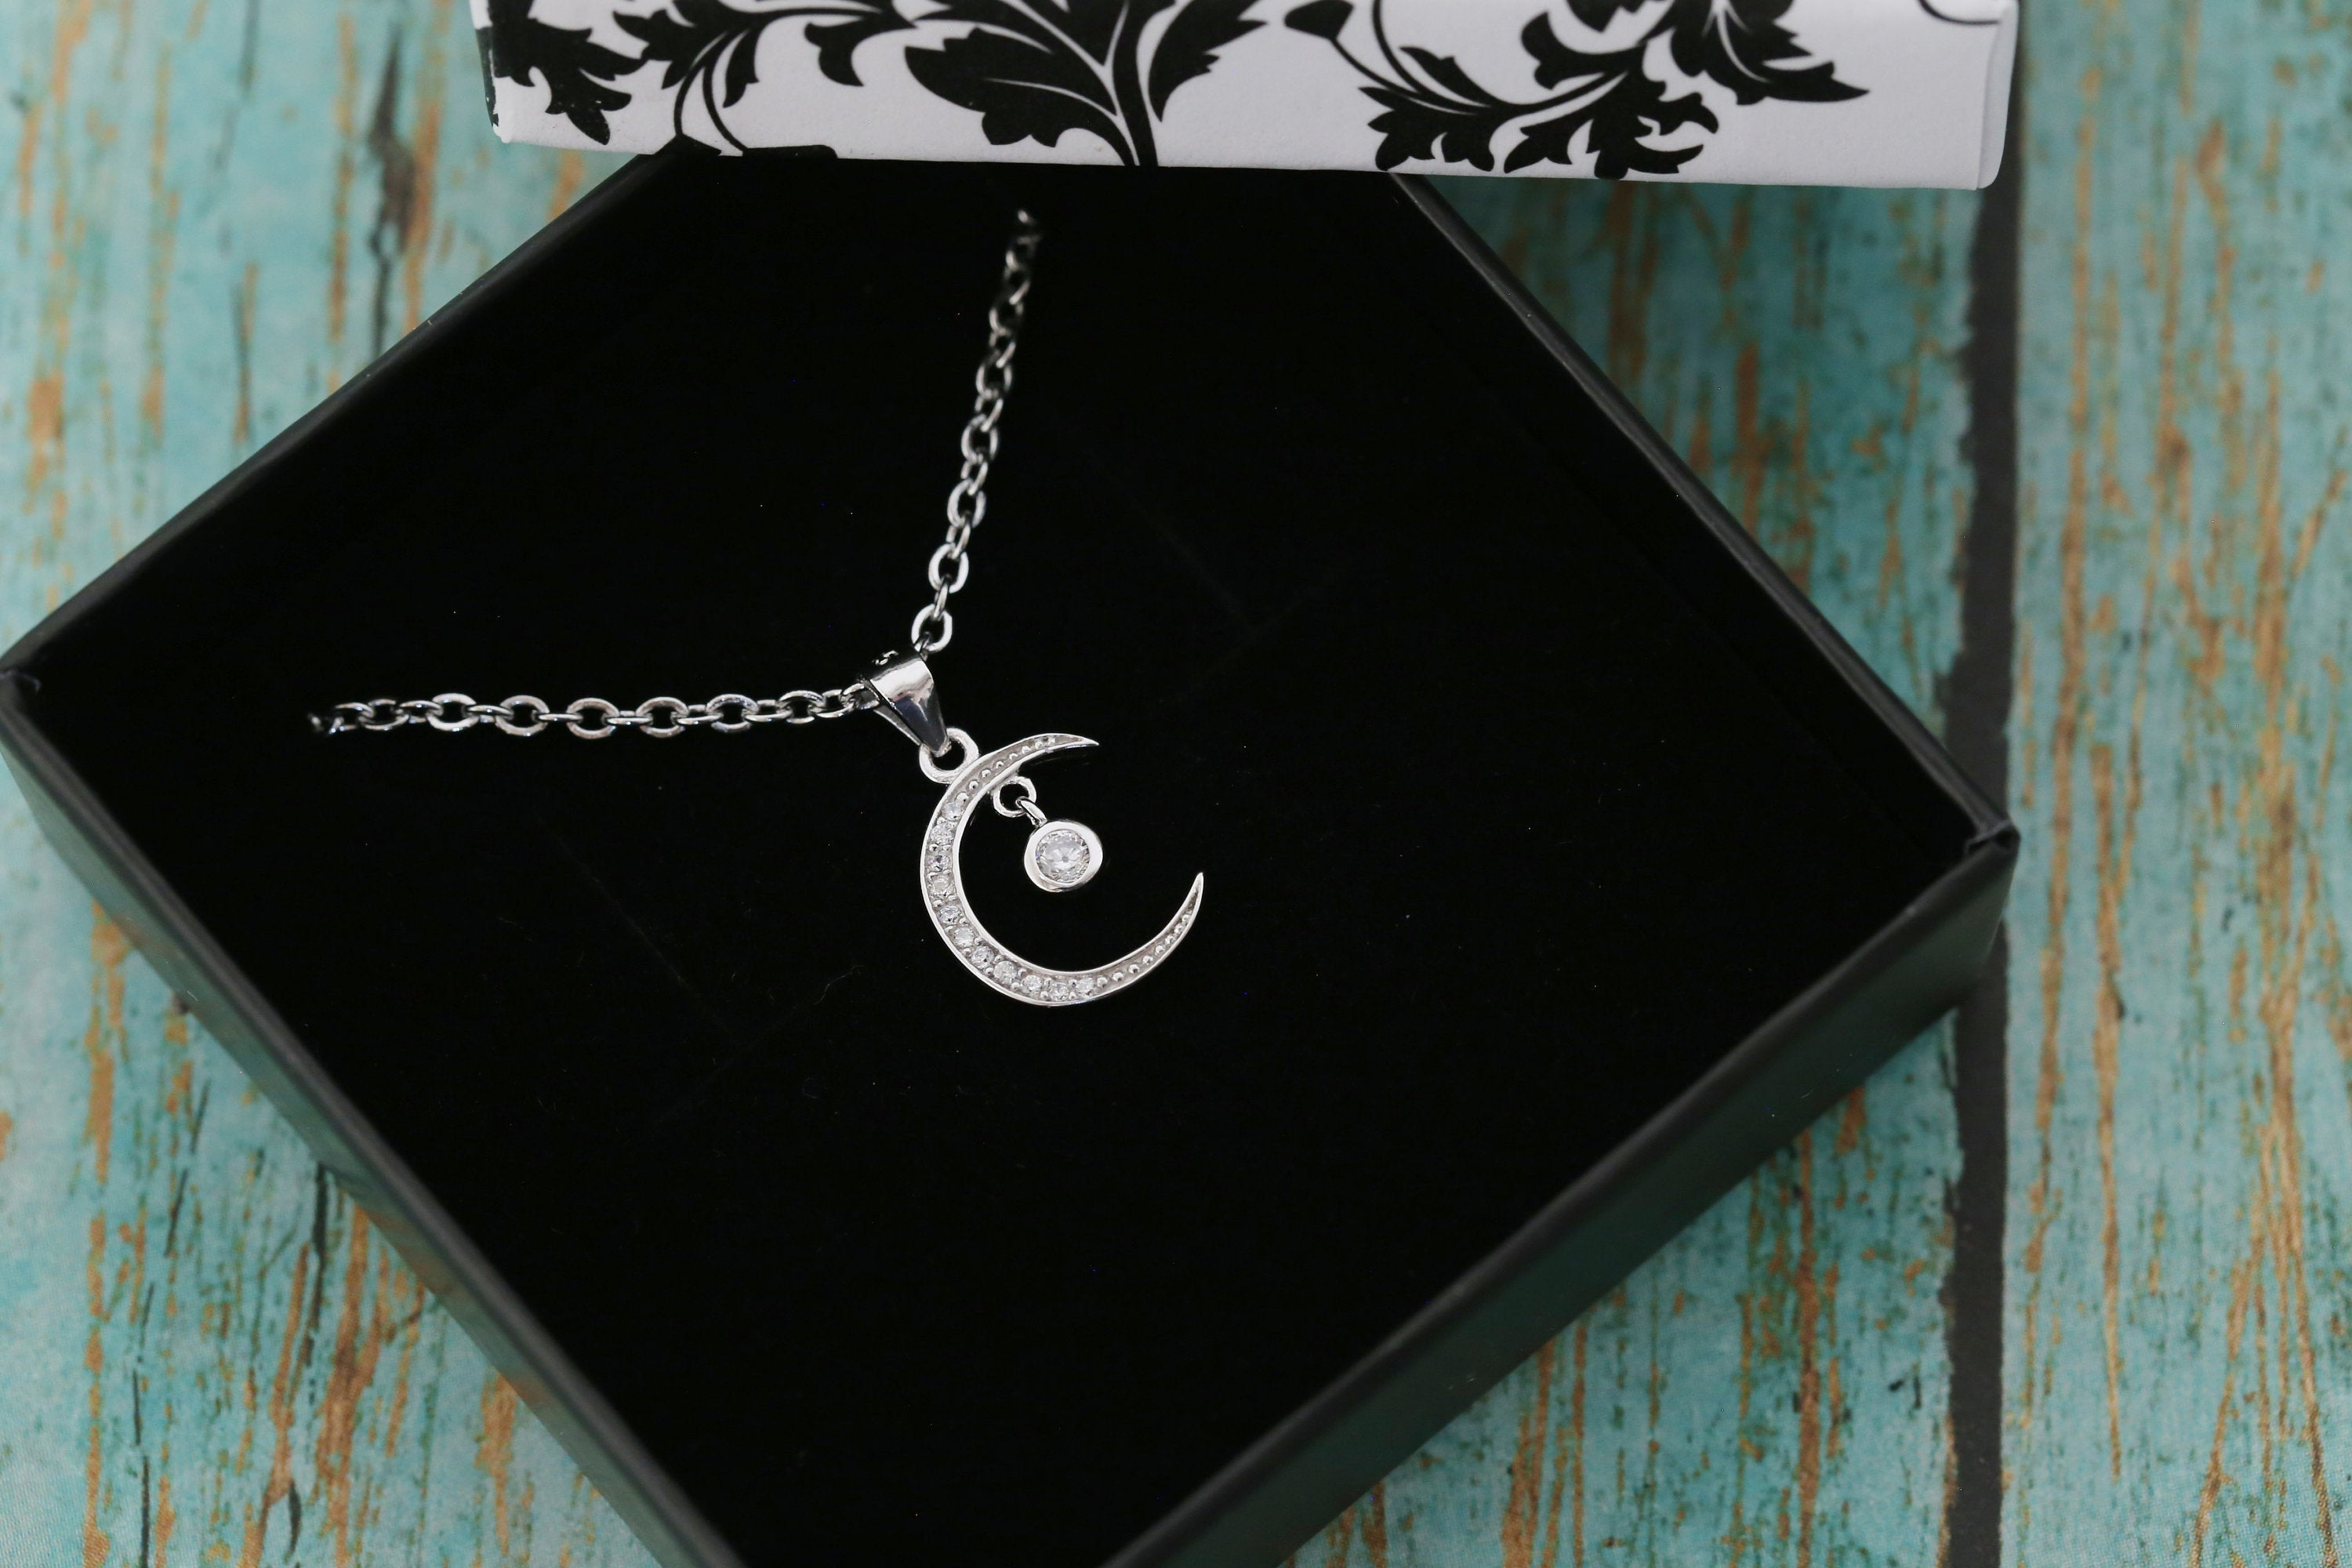 Cremation Ash Pendant - Small Sterling Silver Moon - Cremation Jewelry - Ash Necklace - Ash Jewelry - Urn - Urn Jewelry - Pet Loss